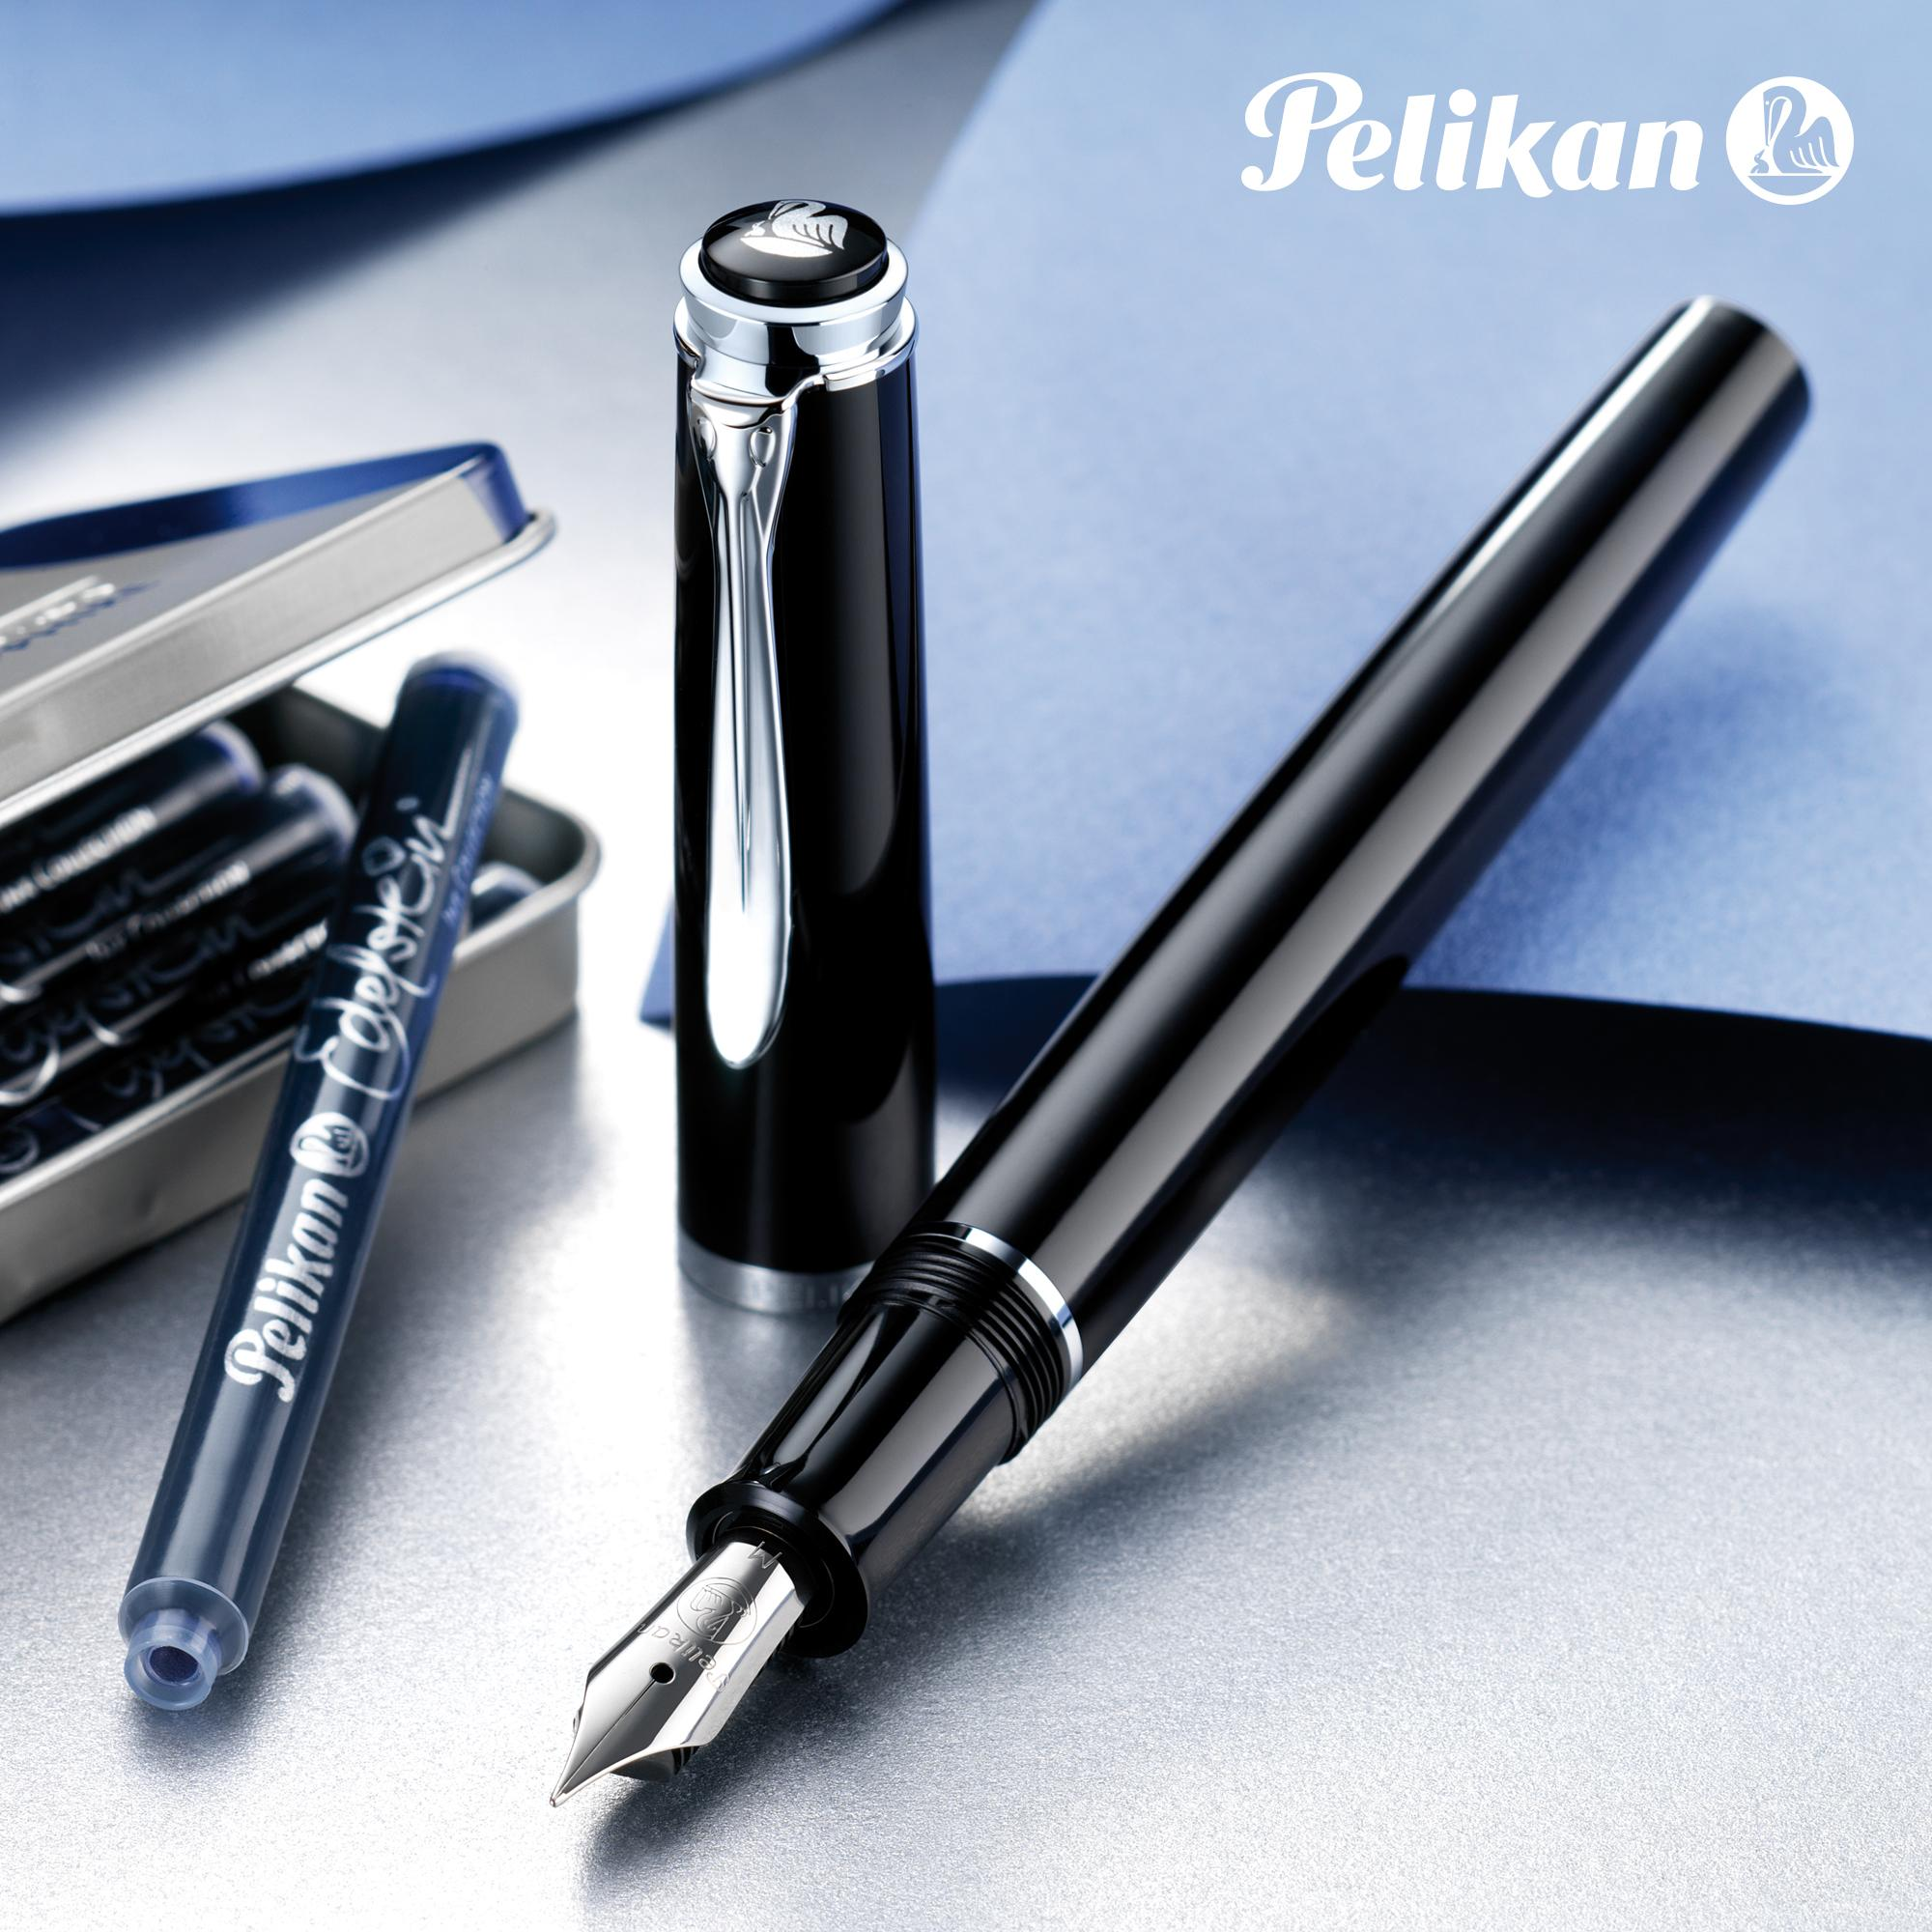 pelikan-p205-fountain-pen